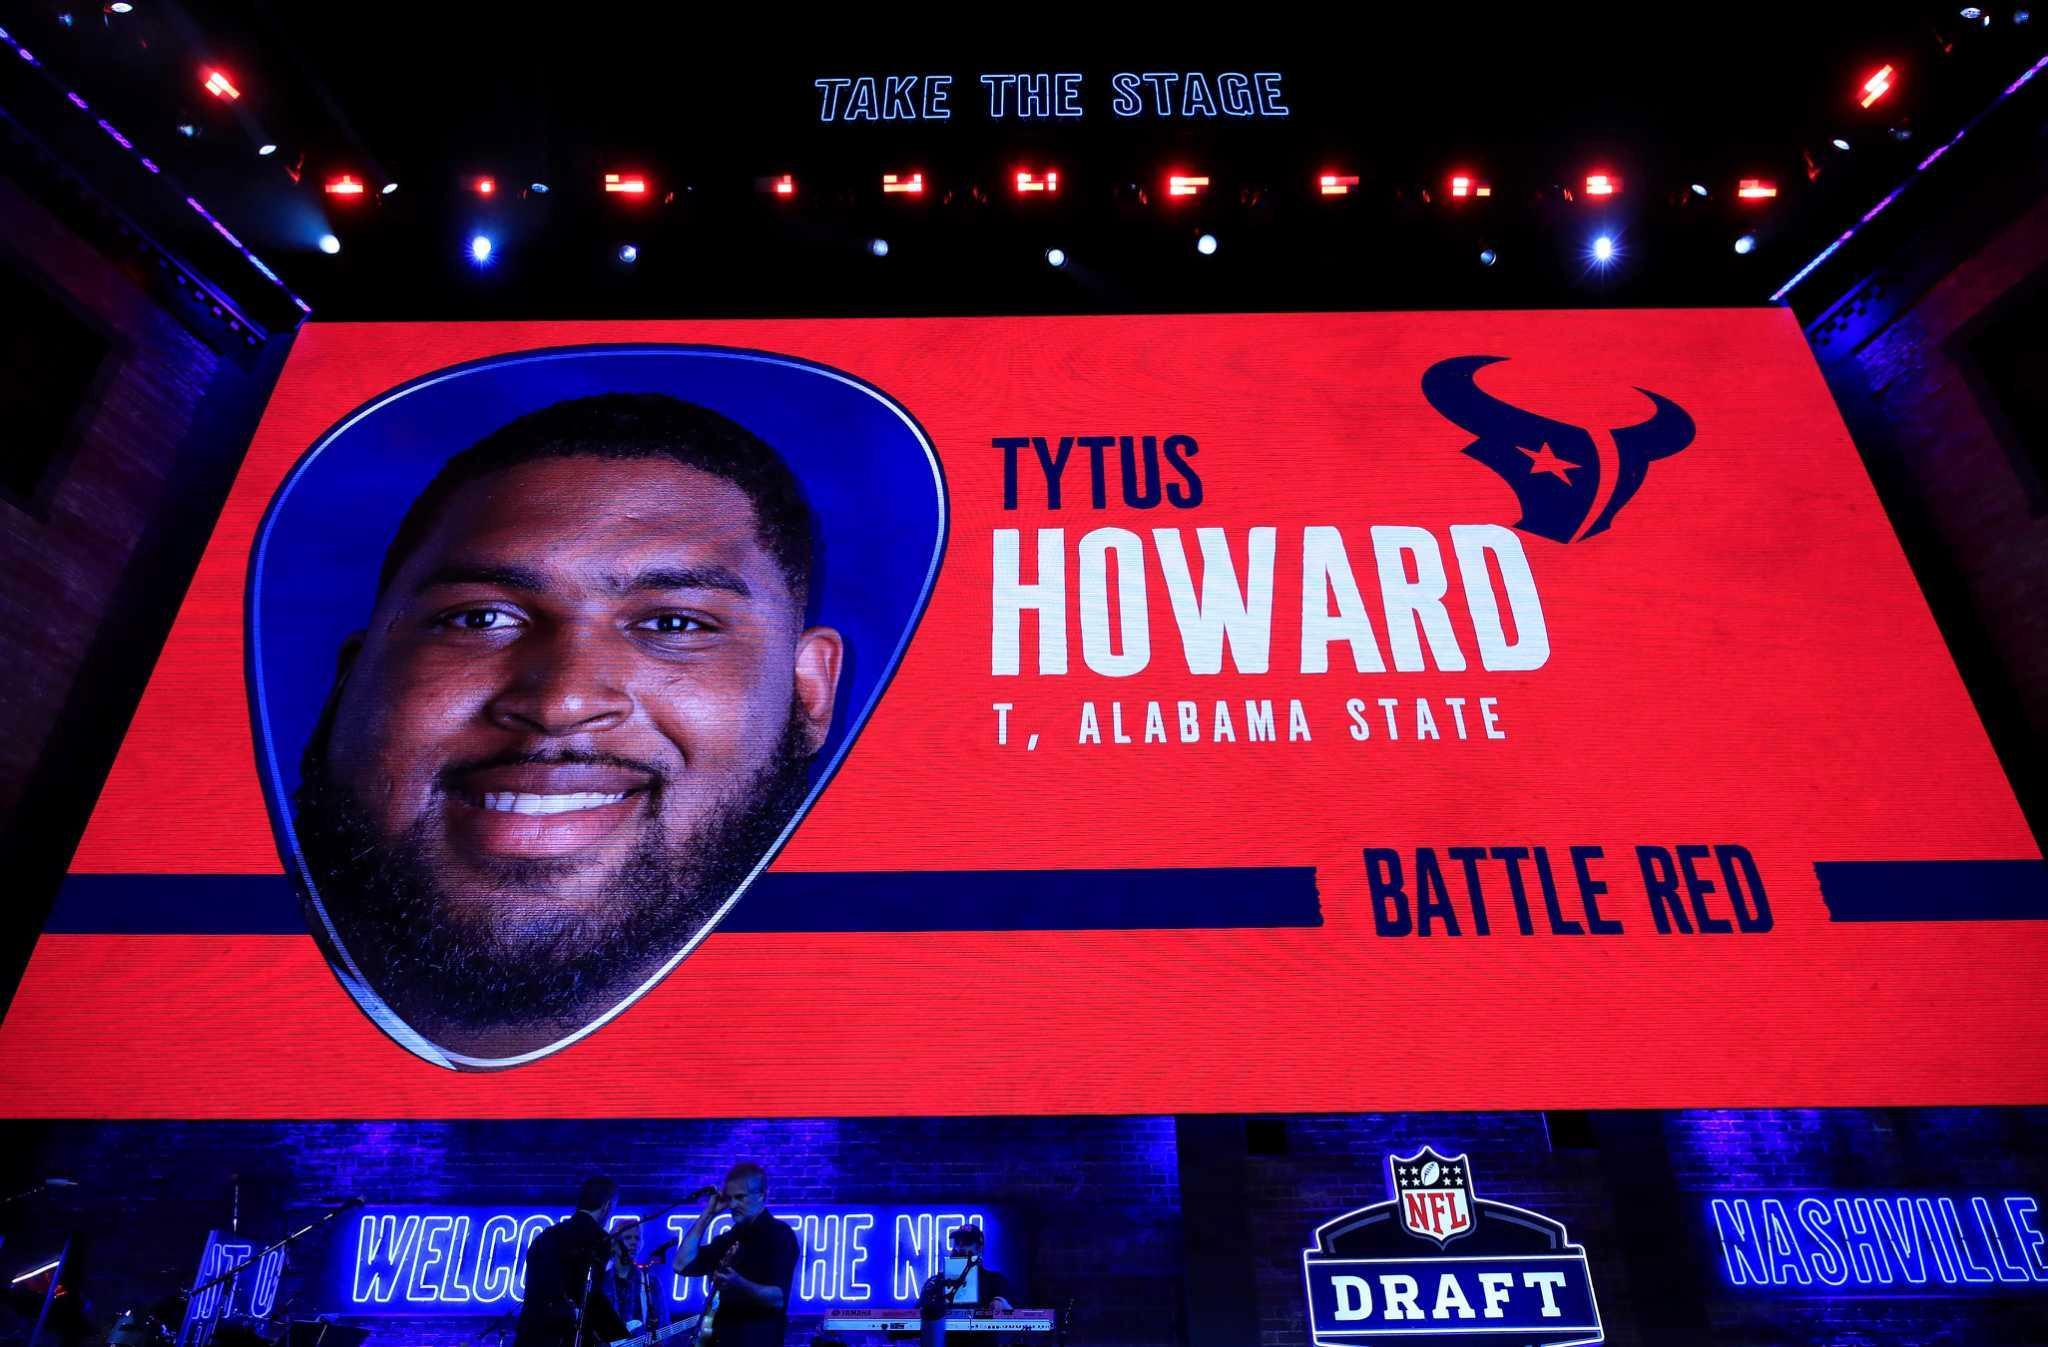 Tytus Howard